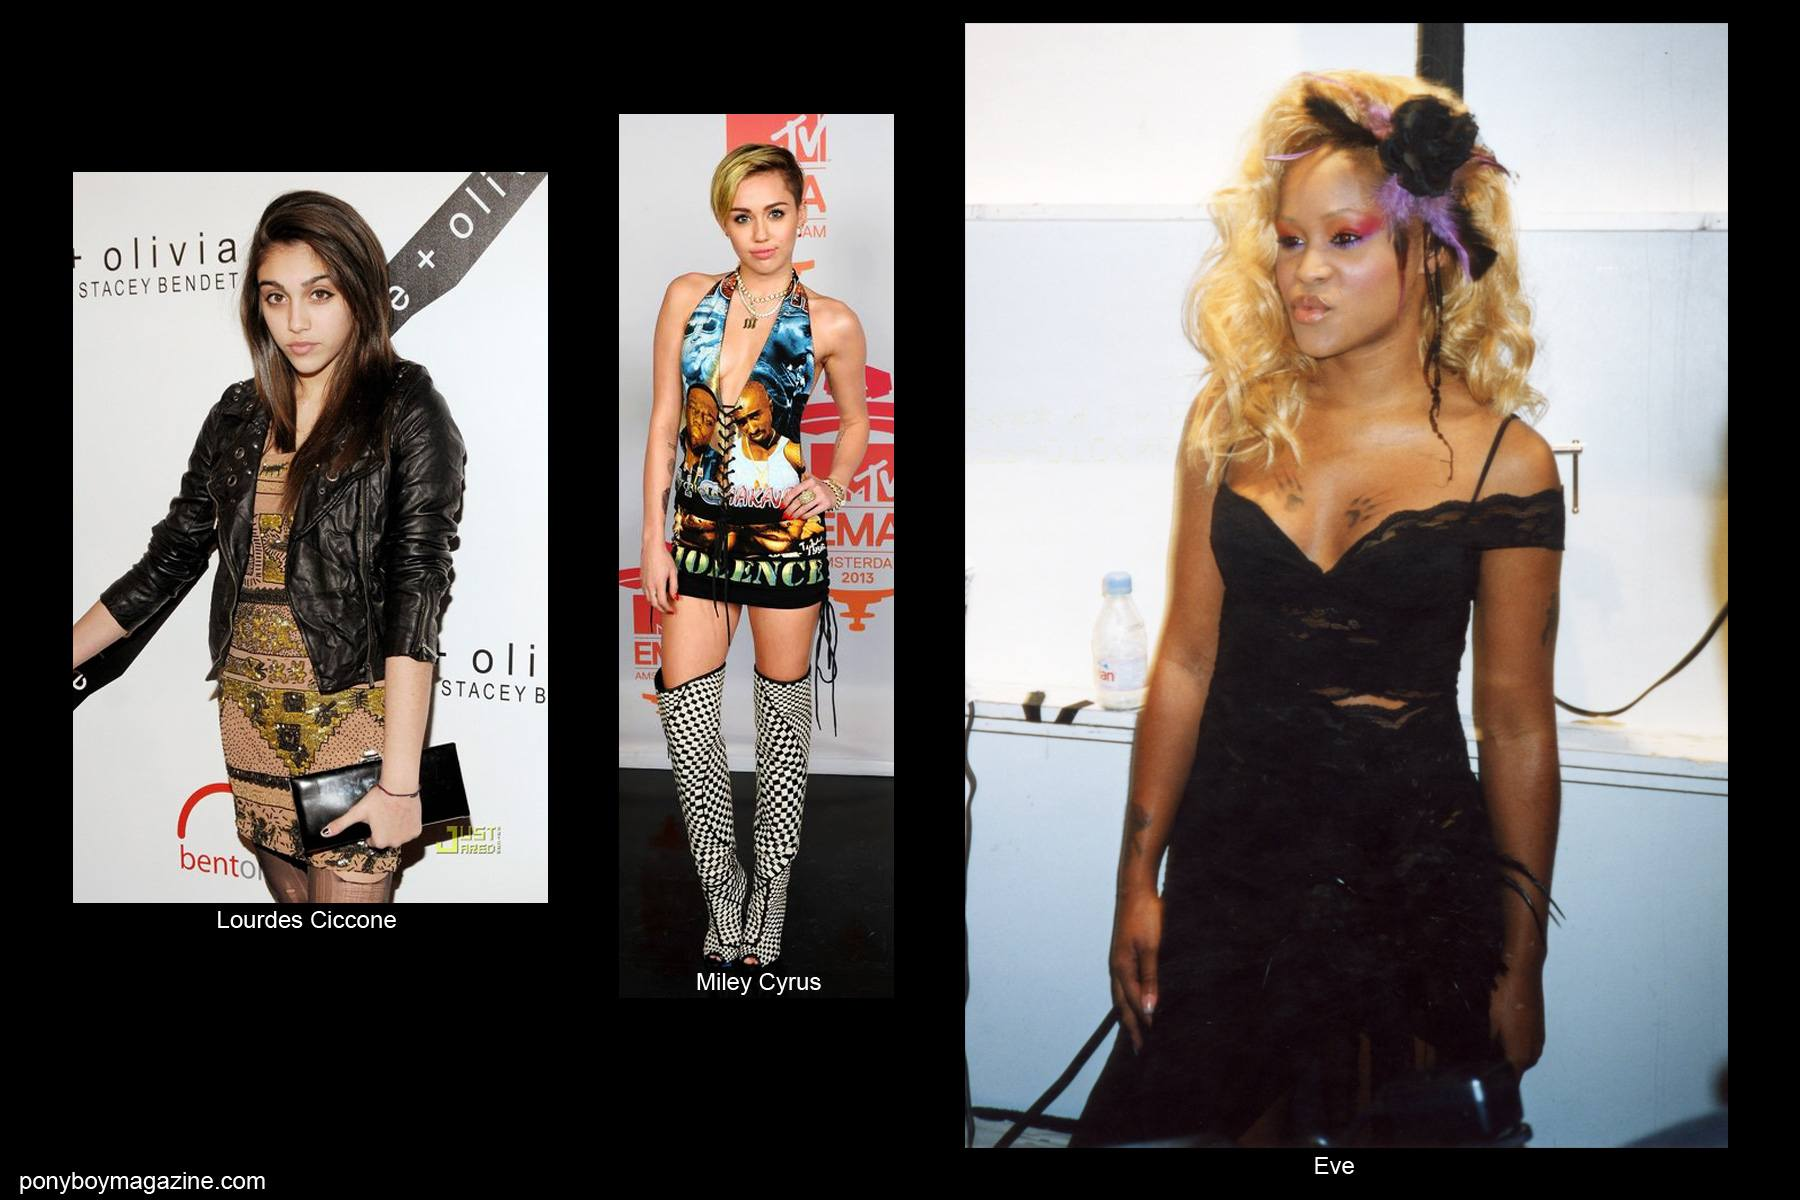 Lourdes Ciccone, Miley Cyrus and Eve all wearing David Dalrymple designs. Ponyboy Magazine.